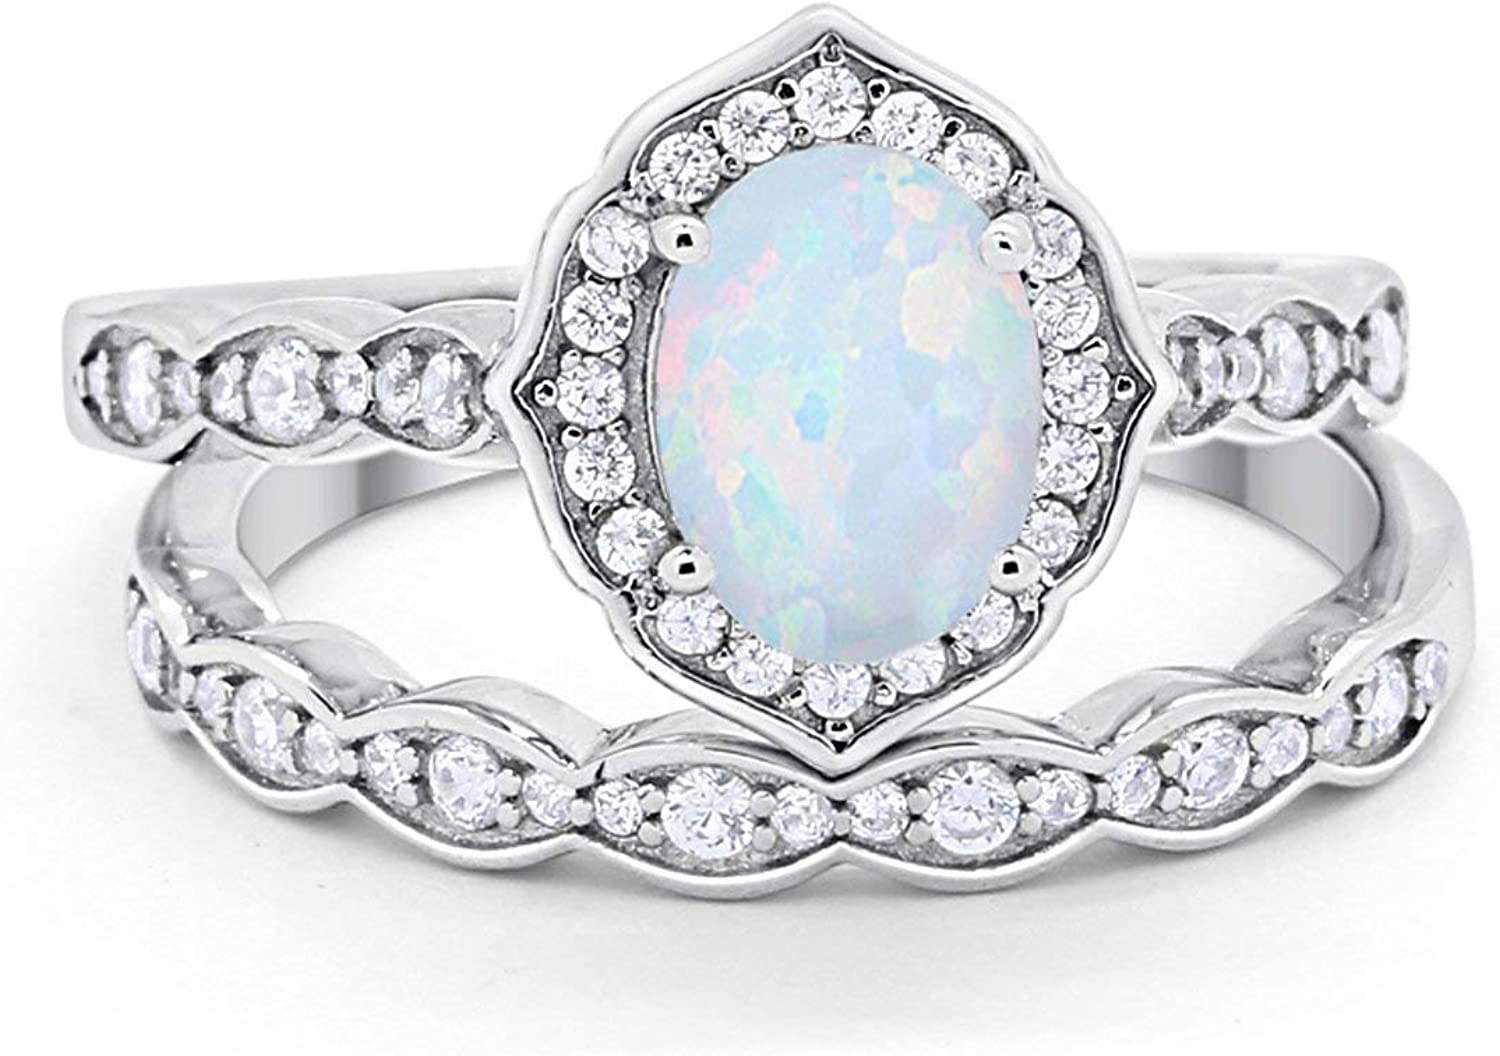 Blue Apple Co. Two Piece Art Deco Vintage Style Wedding Engagement Bridal Set Ring Band 925 Sterling Silver Oval Round CZ